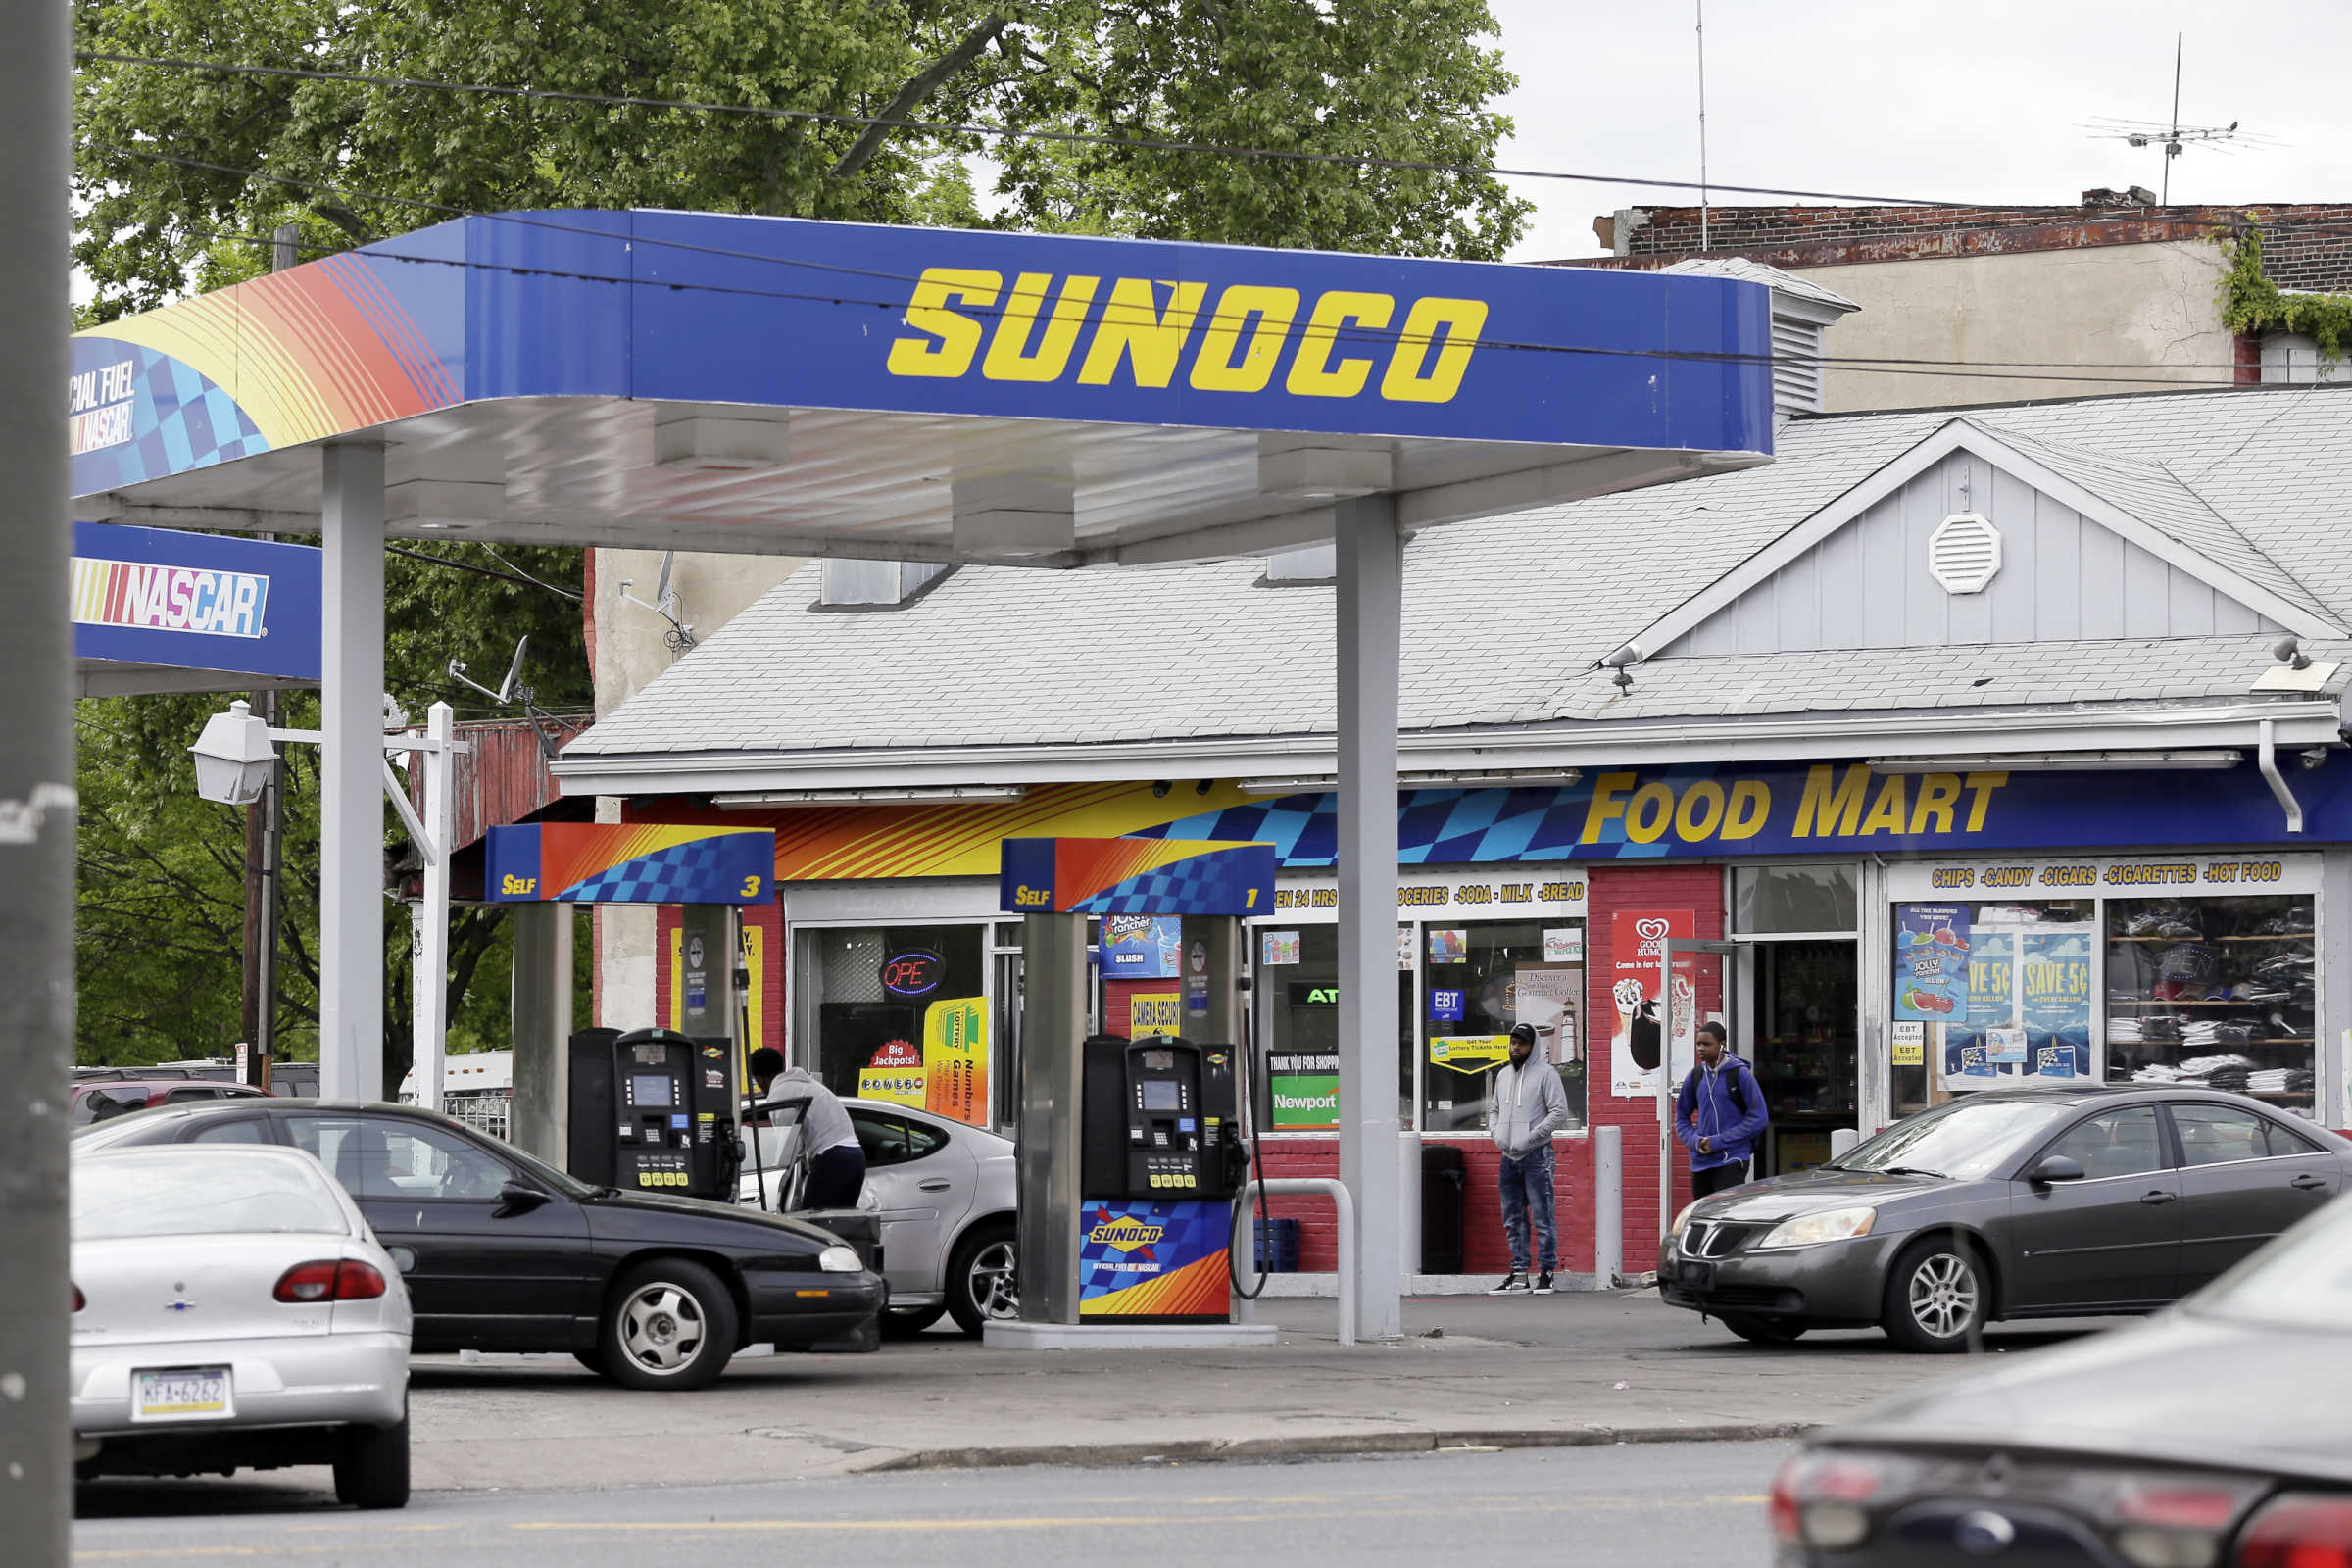 The Sunoco gas station at 33rd and York Streets in Philadelphia.